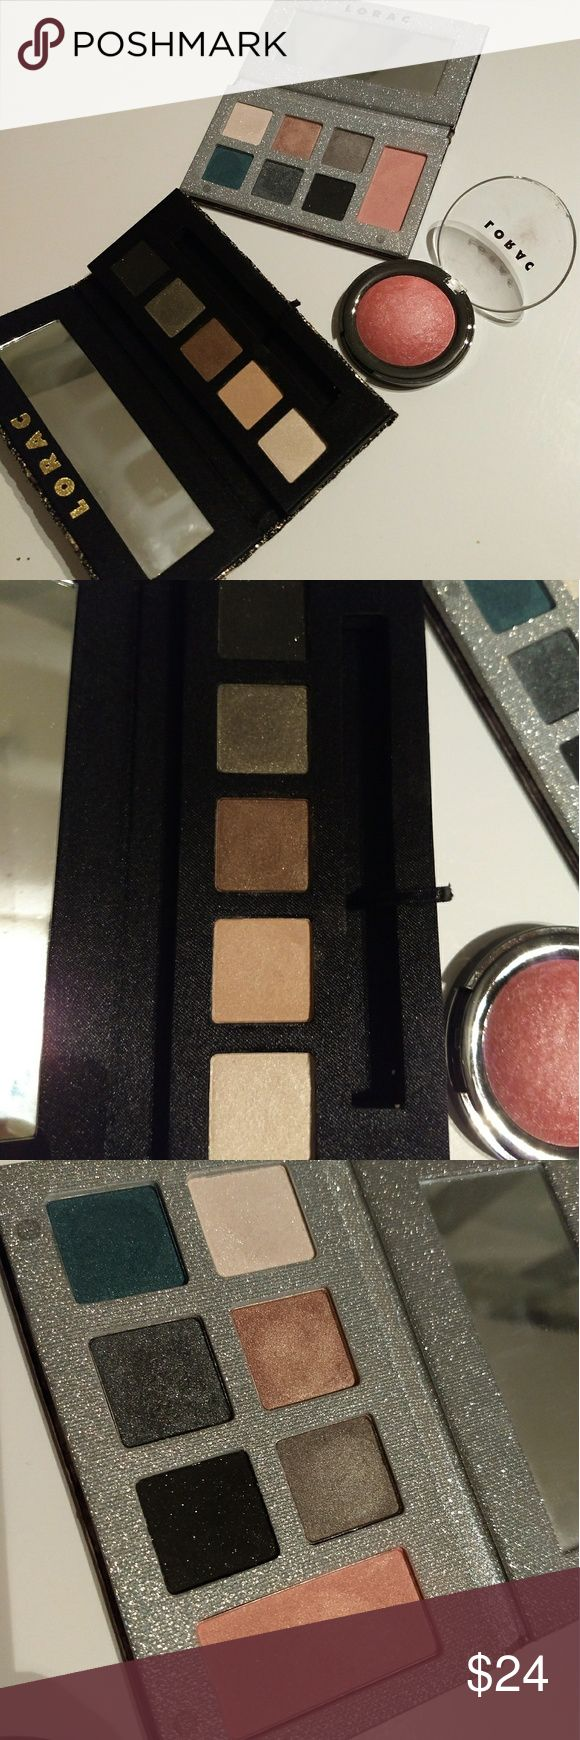 Lorac eyeshadow palette and blush bundle This is a bundle including 1 Lorac 5 color eyeshadow palette, 1 Lorac 6 color eyeshadow and blush palette, and 1 full-size Lorac Baked Matte Satin Blush in Exposed. All swatched once. If you wish to purchase one of these items separately let me know in the comments. Lorac Makeup Eyeshadow